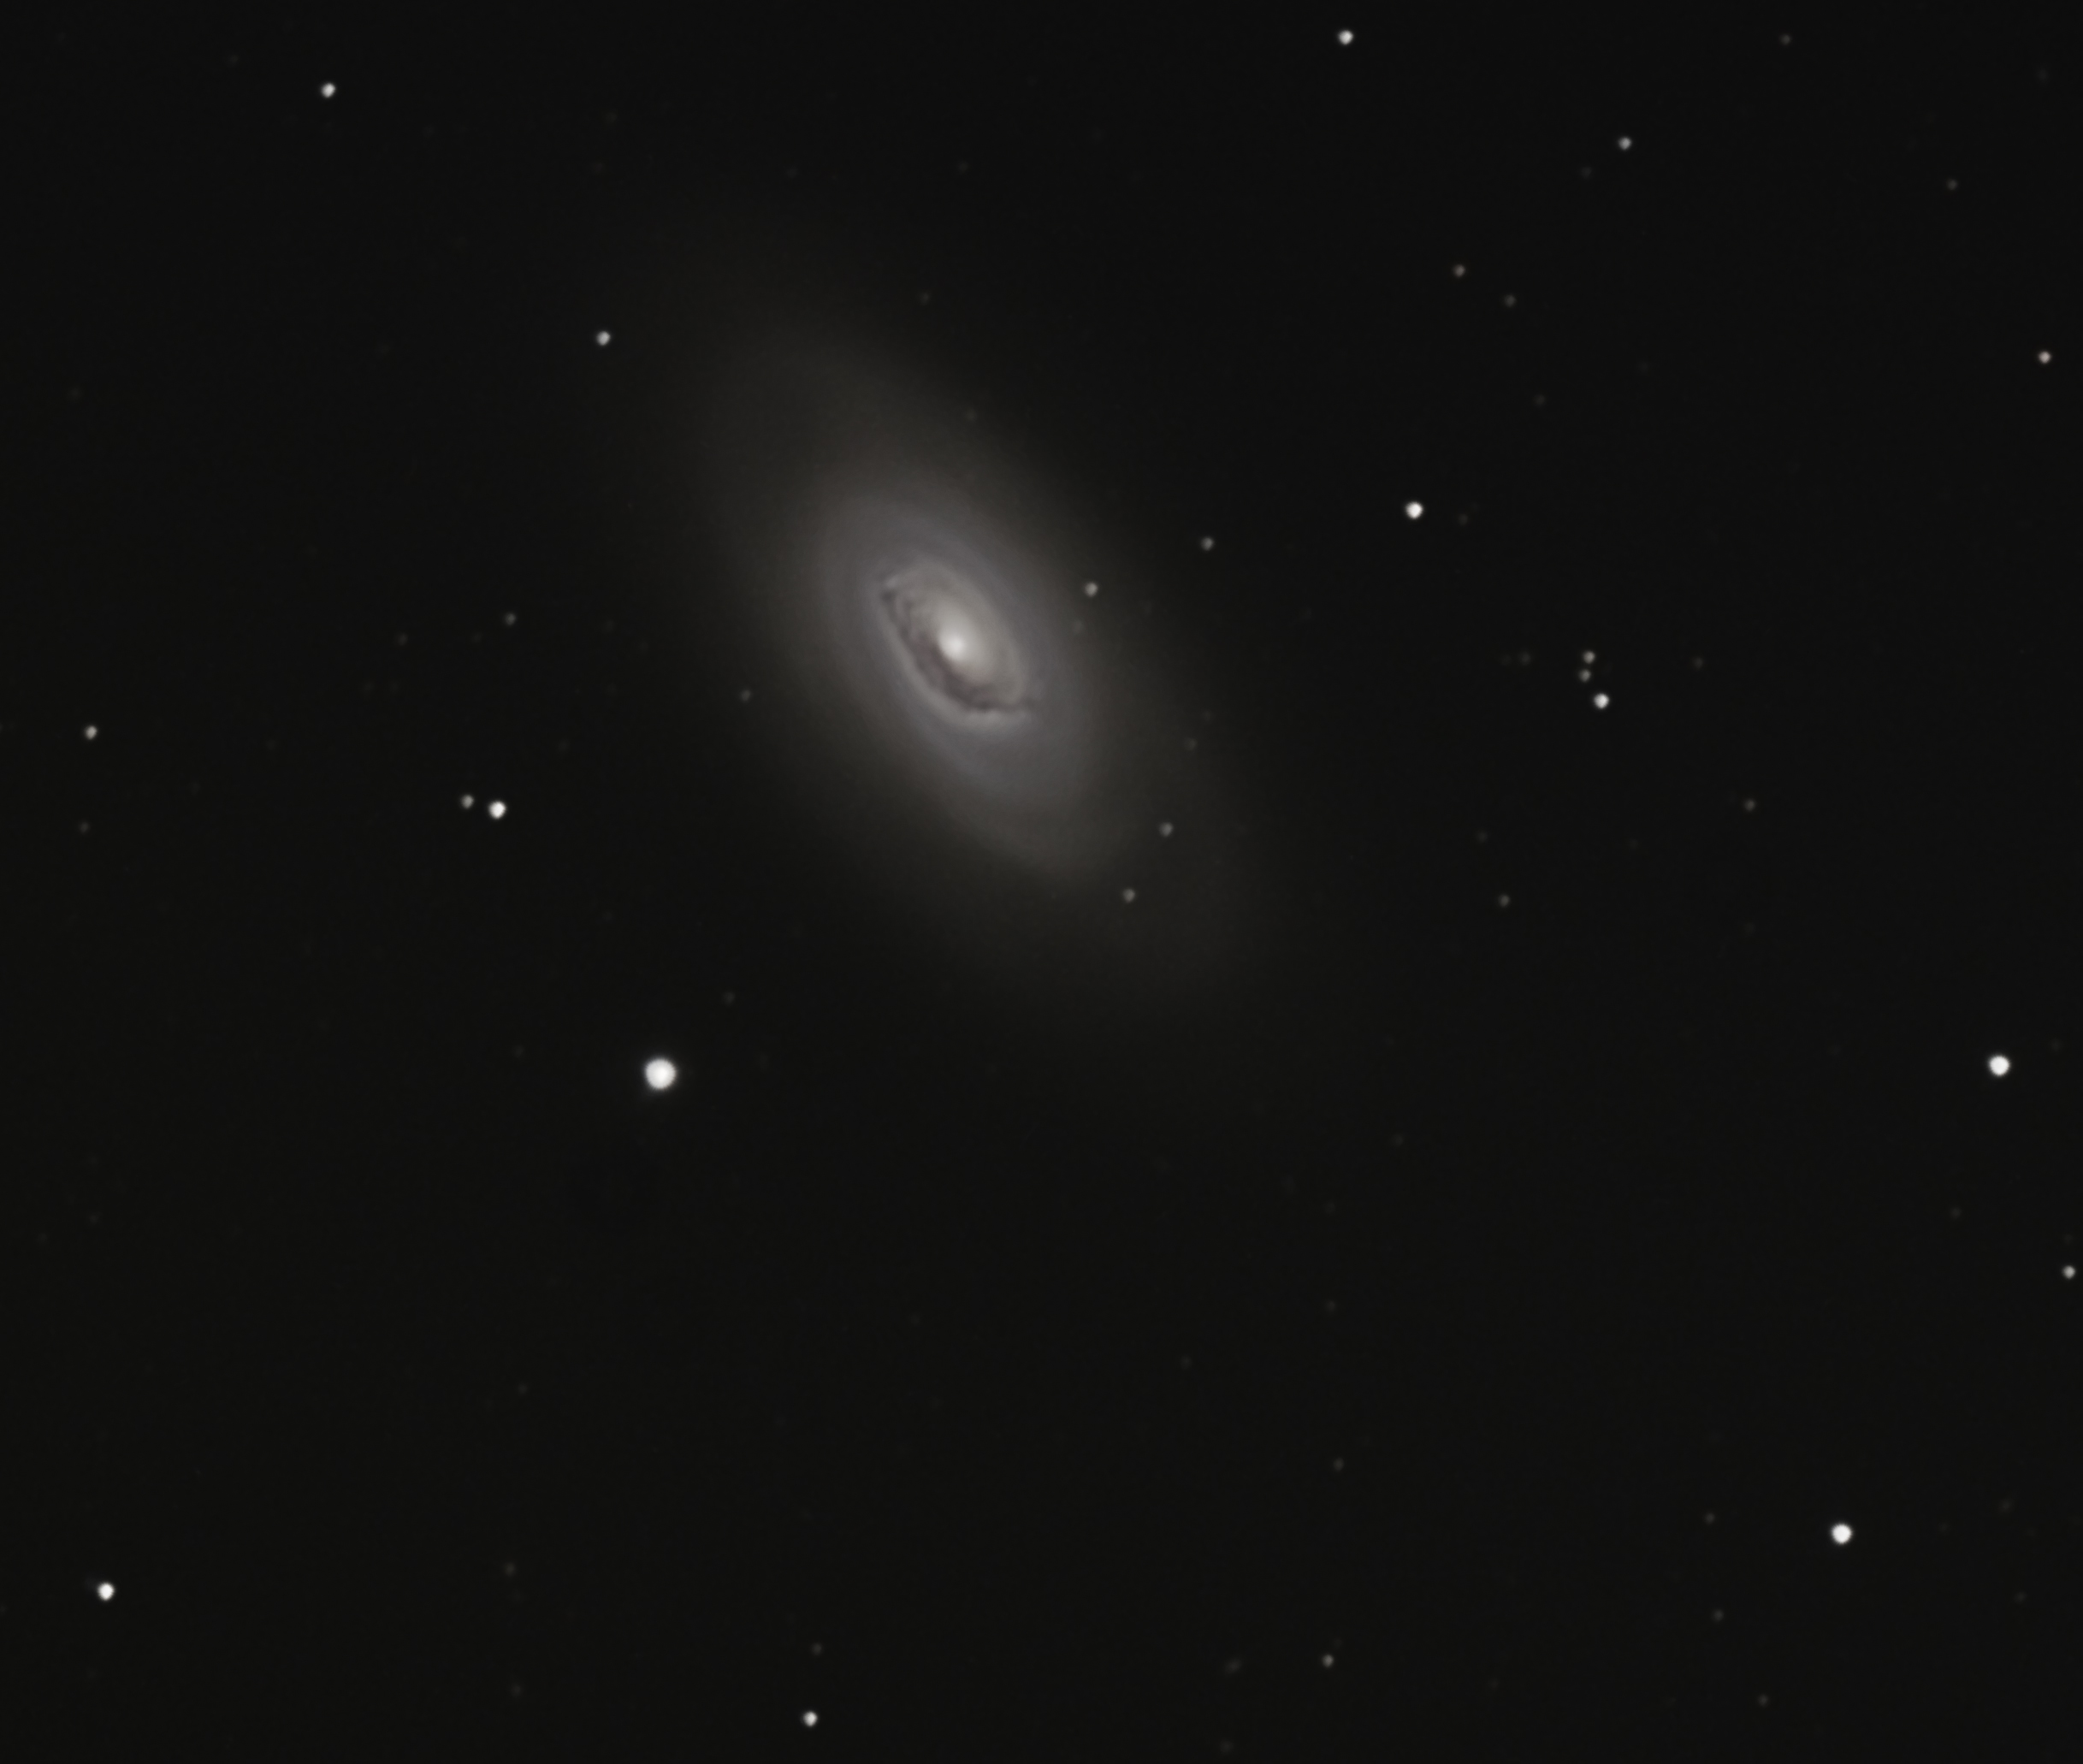 The Black Eye Galaxy in Coma Berenices, known for its distinctive dark lane near the galaxy's core.  This is the result of eight 15-minute exposures taken with a QSI583wsg one-shot color camera and Celestron HD1100 Schmidt-Cassegrain.